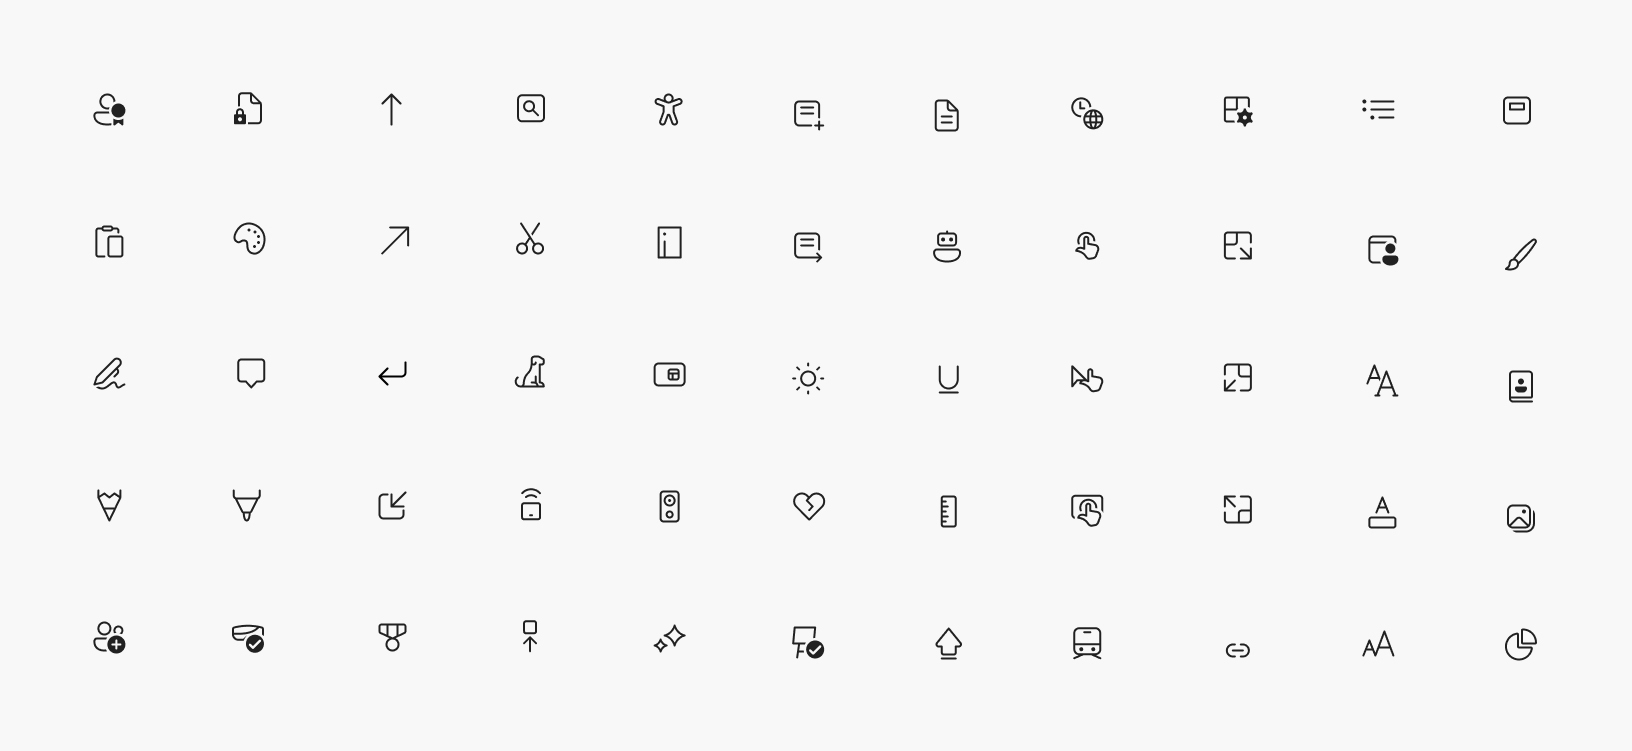 The new Segoe Fluent Icons font includes new icon designs which have a more rounded and simplified look and feel.